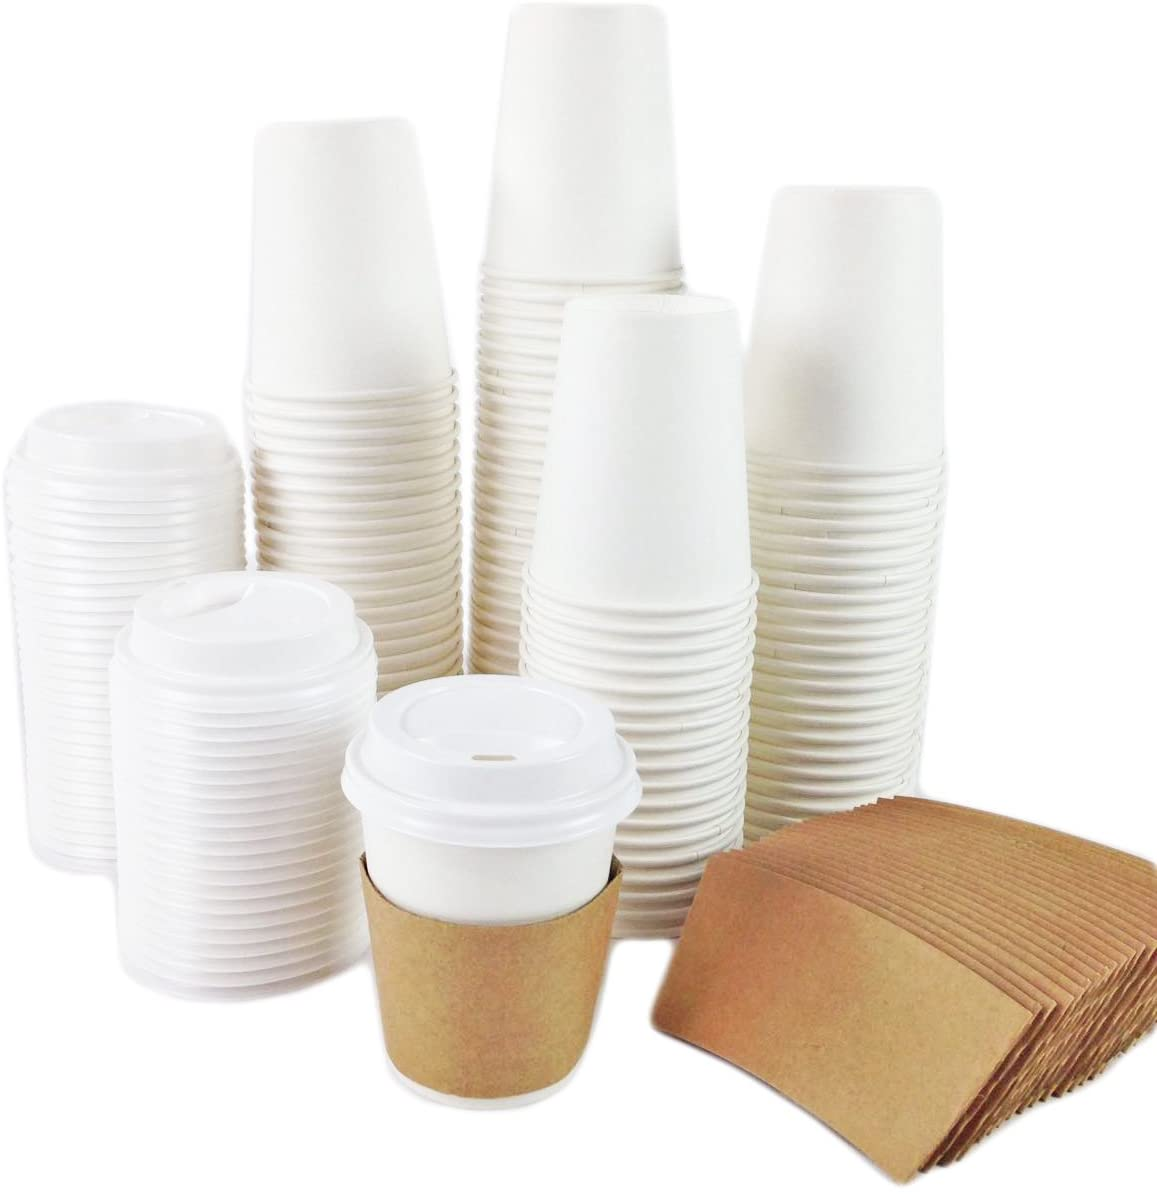 Black Cat Avenue 50 Sets 8oz Disposable Hot White Paper Cups with Lids and Sleeves For Hot Drinks Coffee Cocoa Chocolate Latte Cappuccino